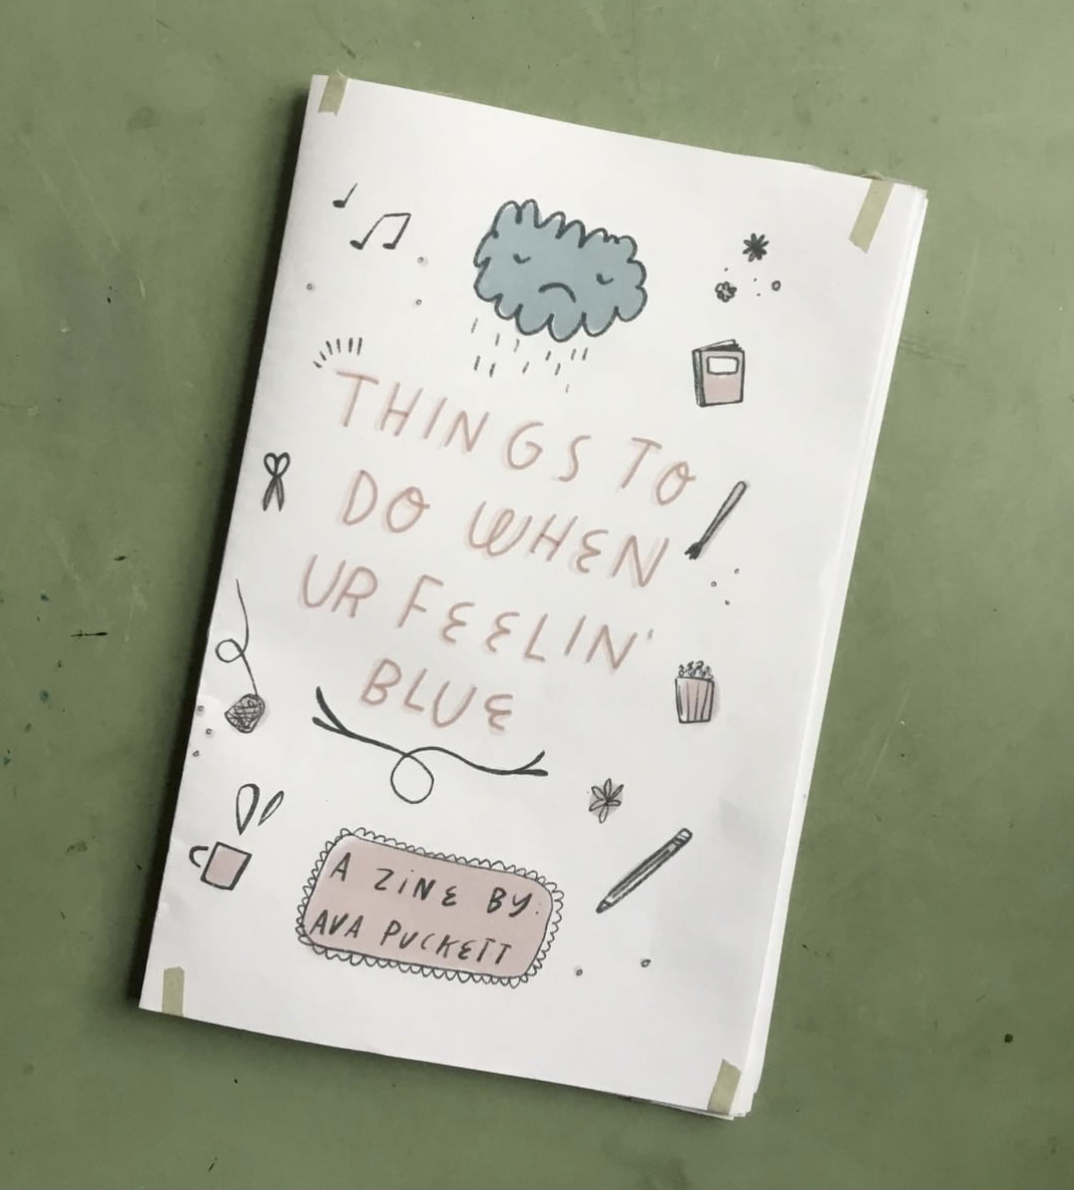 What To Do When Ur Feelin' Blue, a zine by Ava Puckett